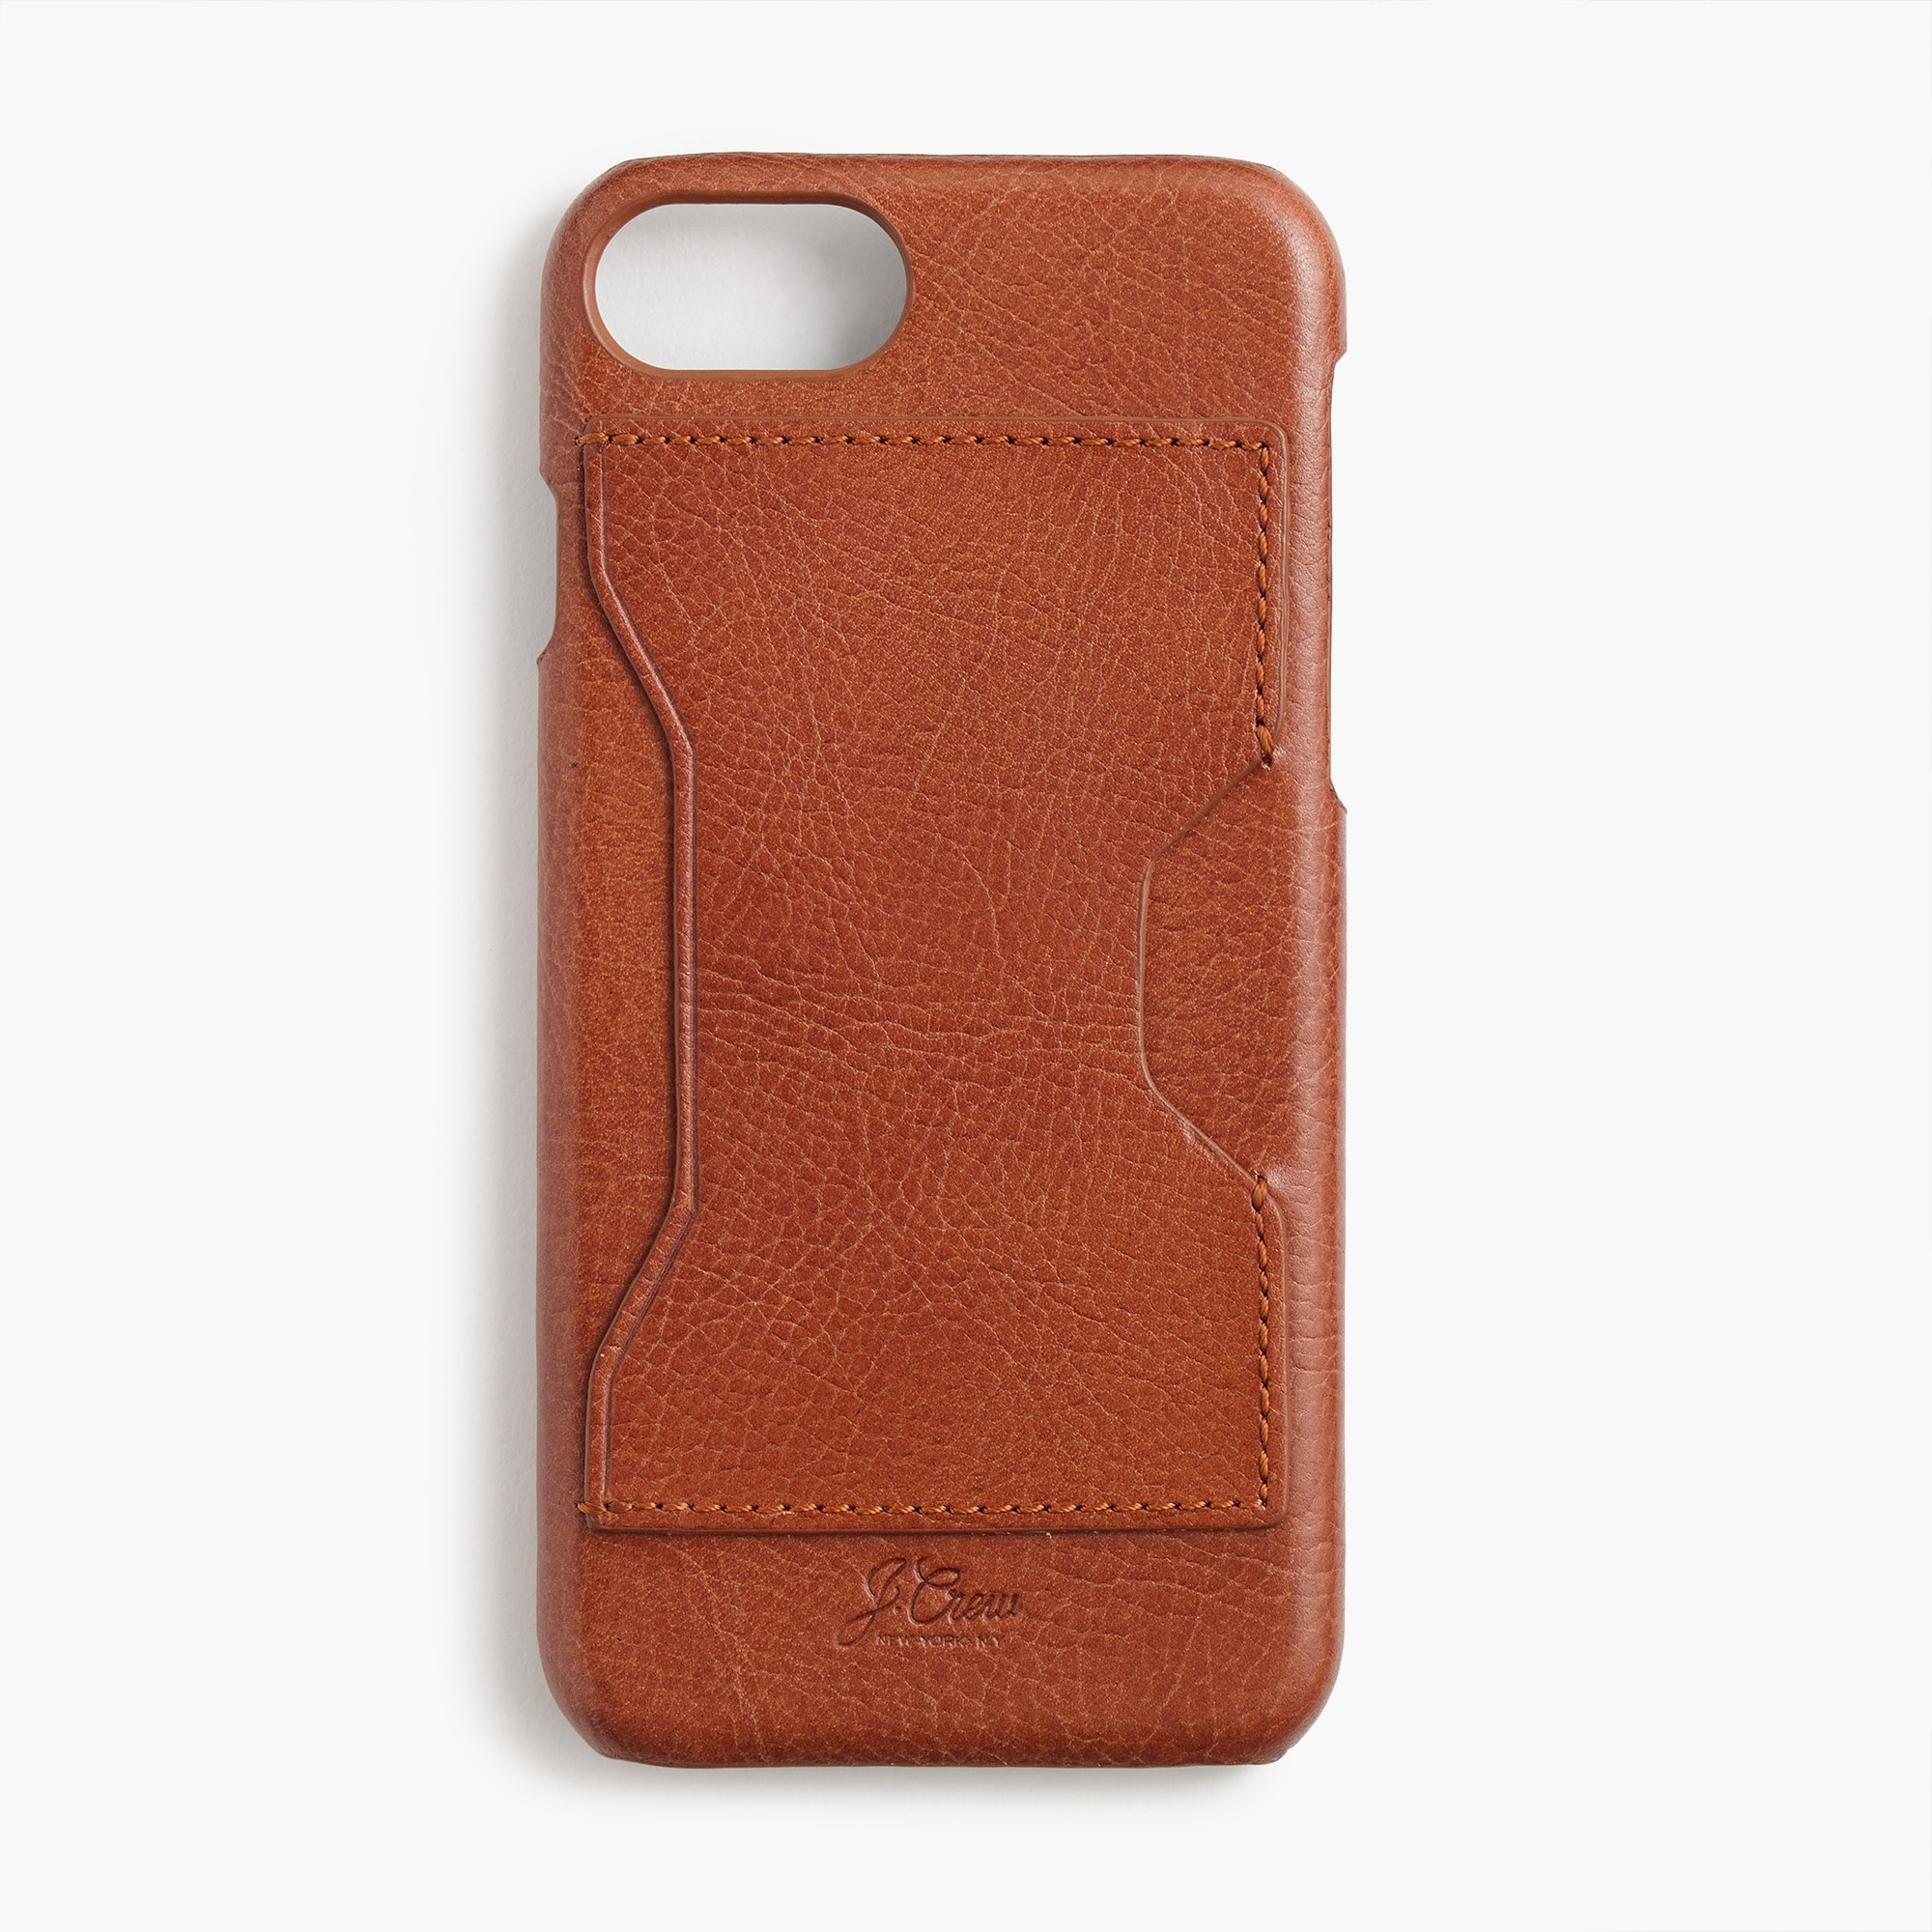 mens Leather case for iPhone® 6/6s/7 with cardholder